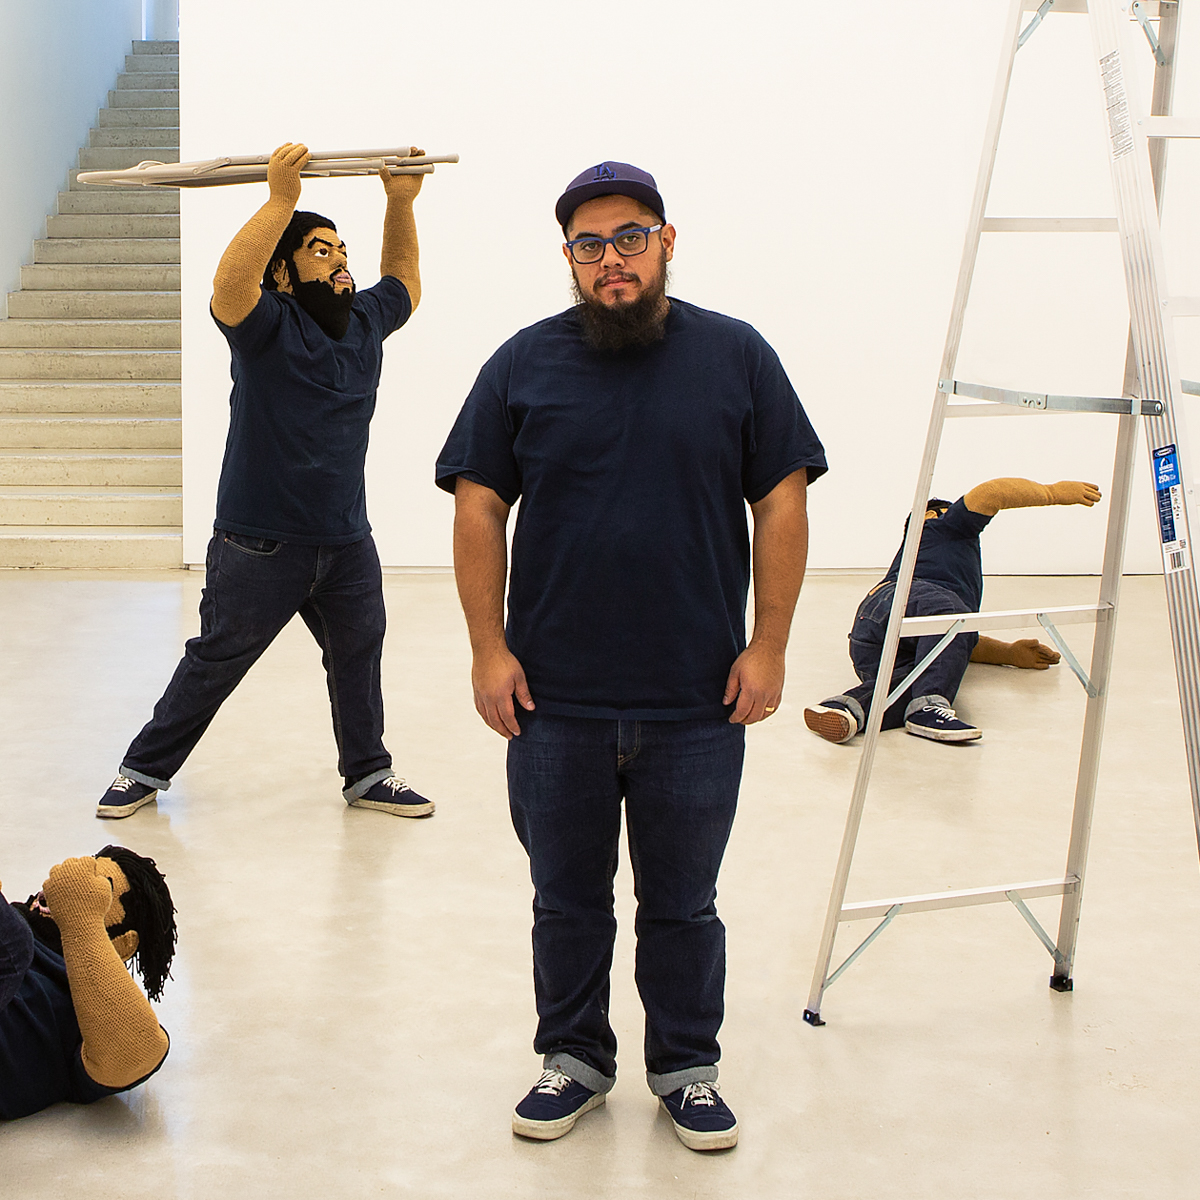 Installation view of Another Thing You Did to Me, by Luis Flores at Salon 94, New York. 5 March - 20 April, 2019. Photographer unknown. Courtesy of the artist and Salon 94, New York.